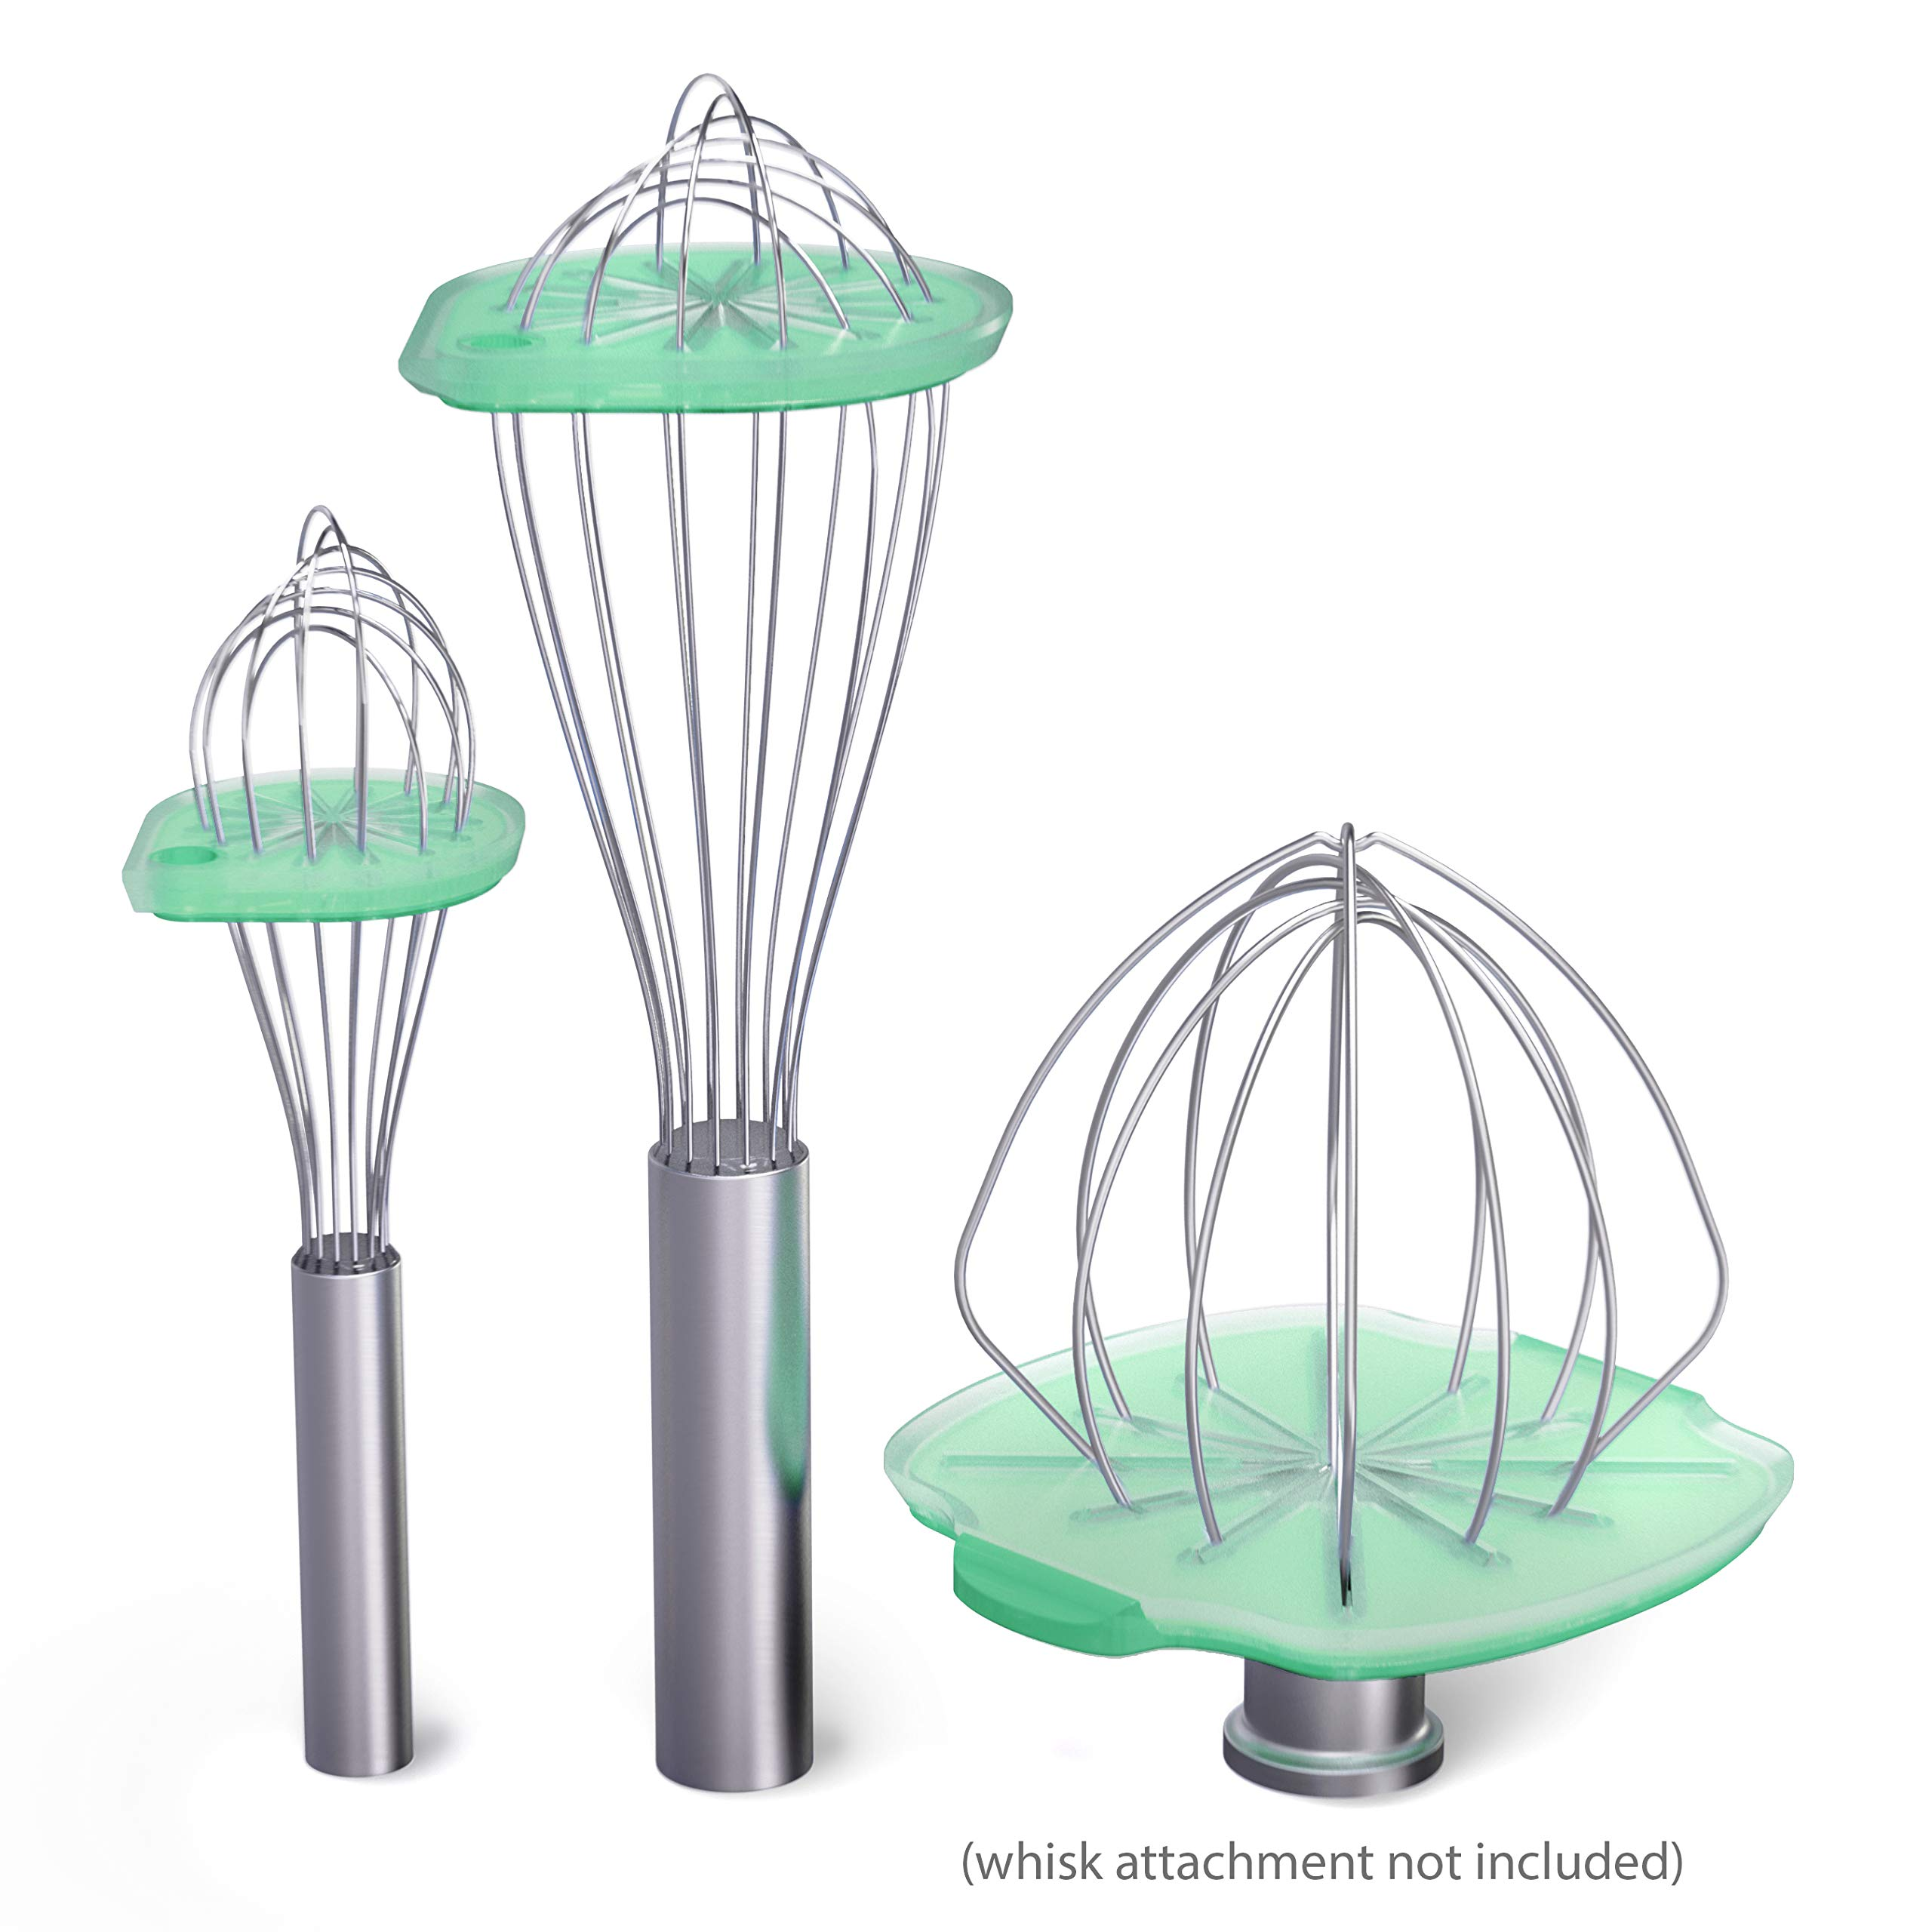 Whisk Wiper 5pc Bundle+ - Mix Without The Mess - Kitchen Accessory & Gift - Incl. Whisk Wiper PRO for Tilt-Head Stand Mixer (4.5 & 5qt), Whisk Wiper + Whisk Wiper mini sets (Color: Aquamarine)